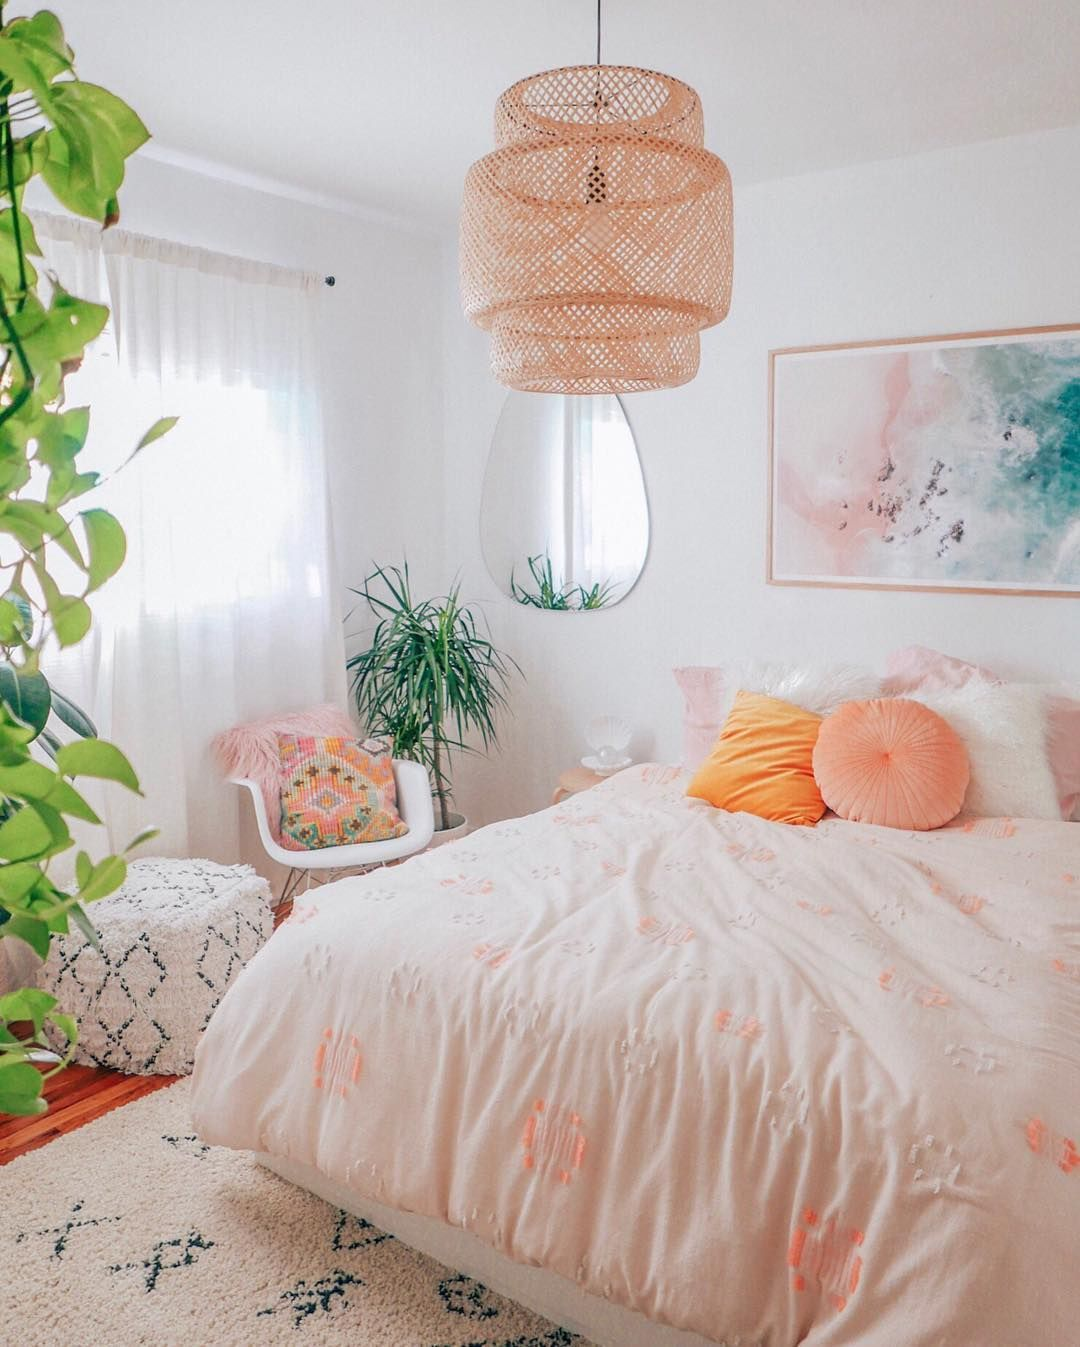 Taking Full Advantage Of These Rainy Days In La Candles Are Lit Chill Playlist Is On And I M Living In Room Inspiration Bedroom Inspirations Bedroom Makeover